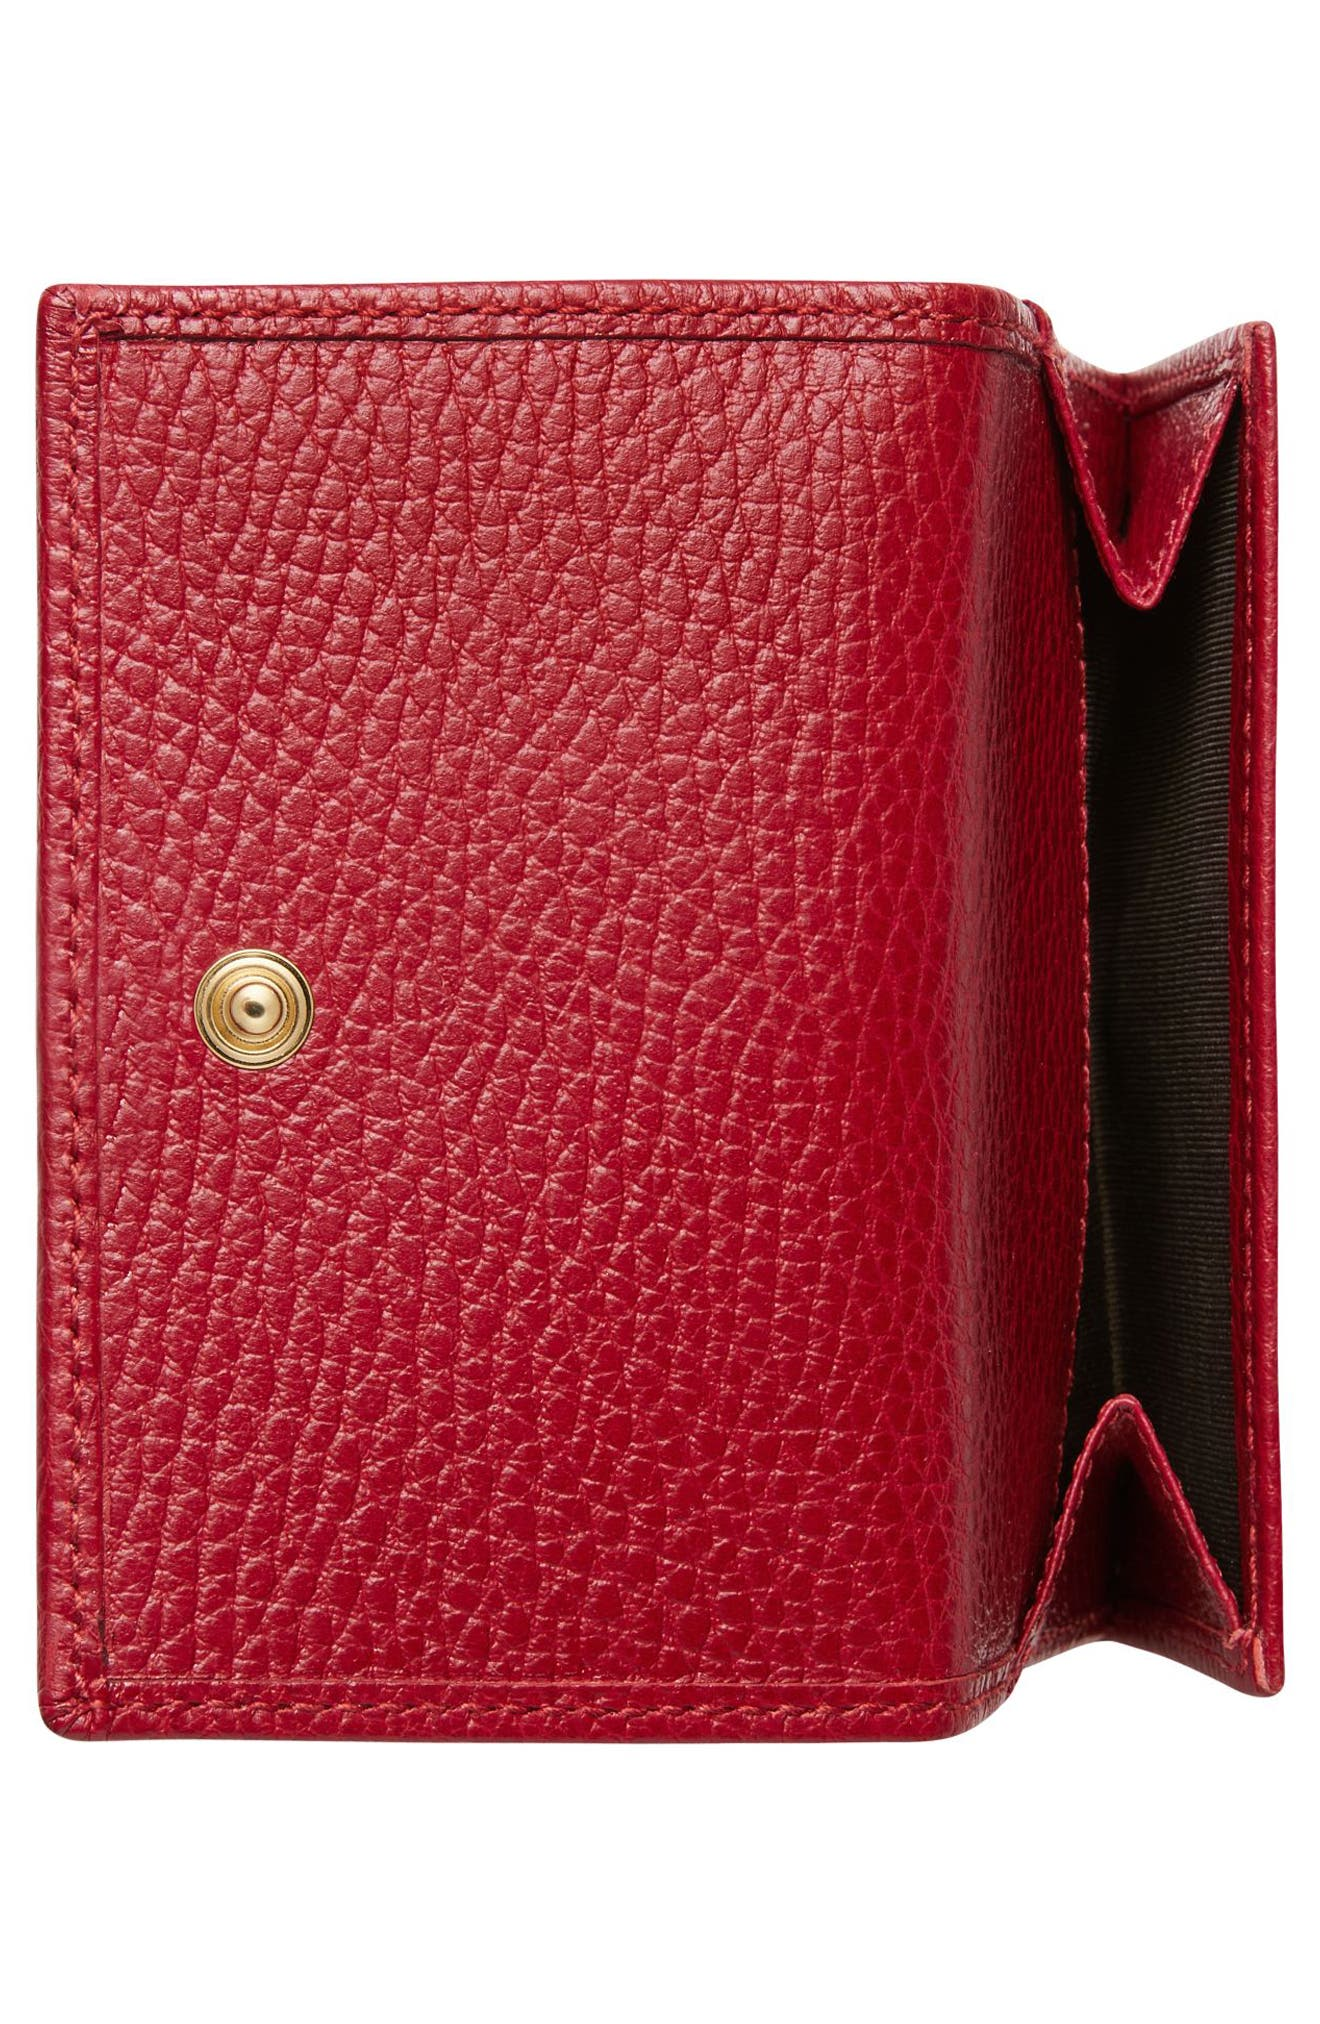 Petite Marmont Leather French Wallet,                             Alternate thumbnail 8, color,